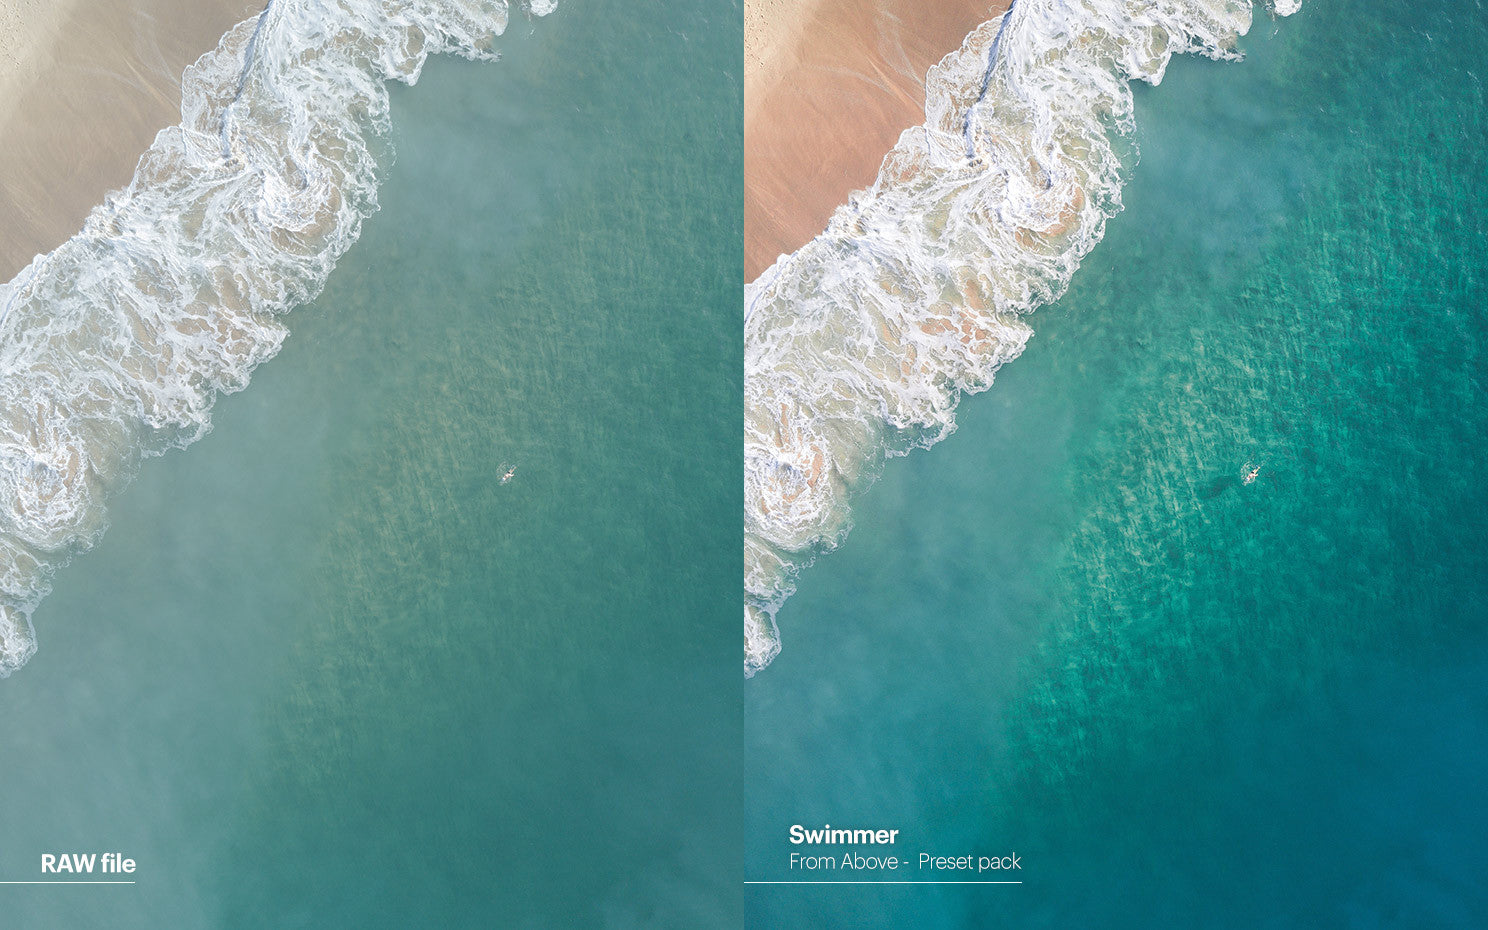 Pat Kay presets - From Above - Swimmer